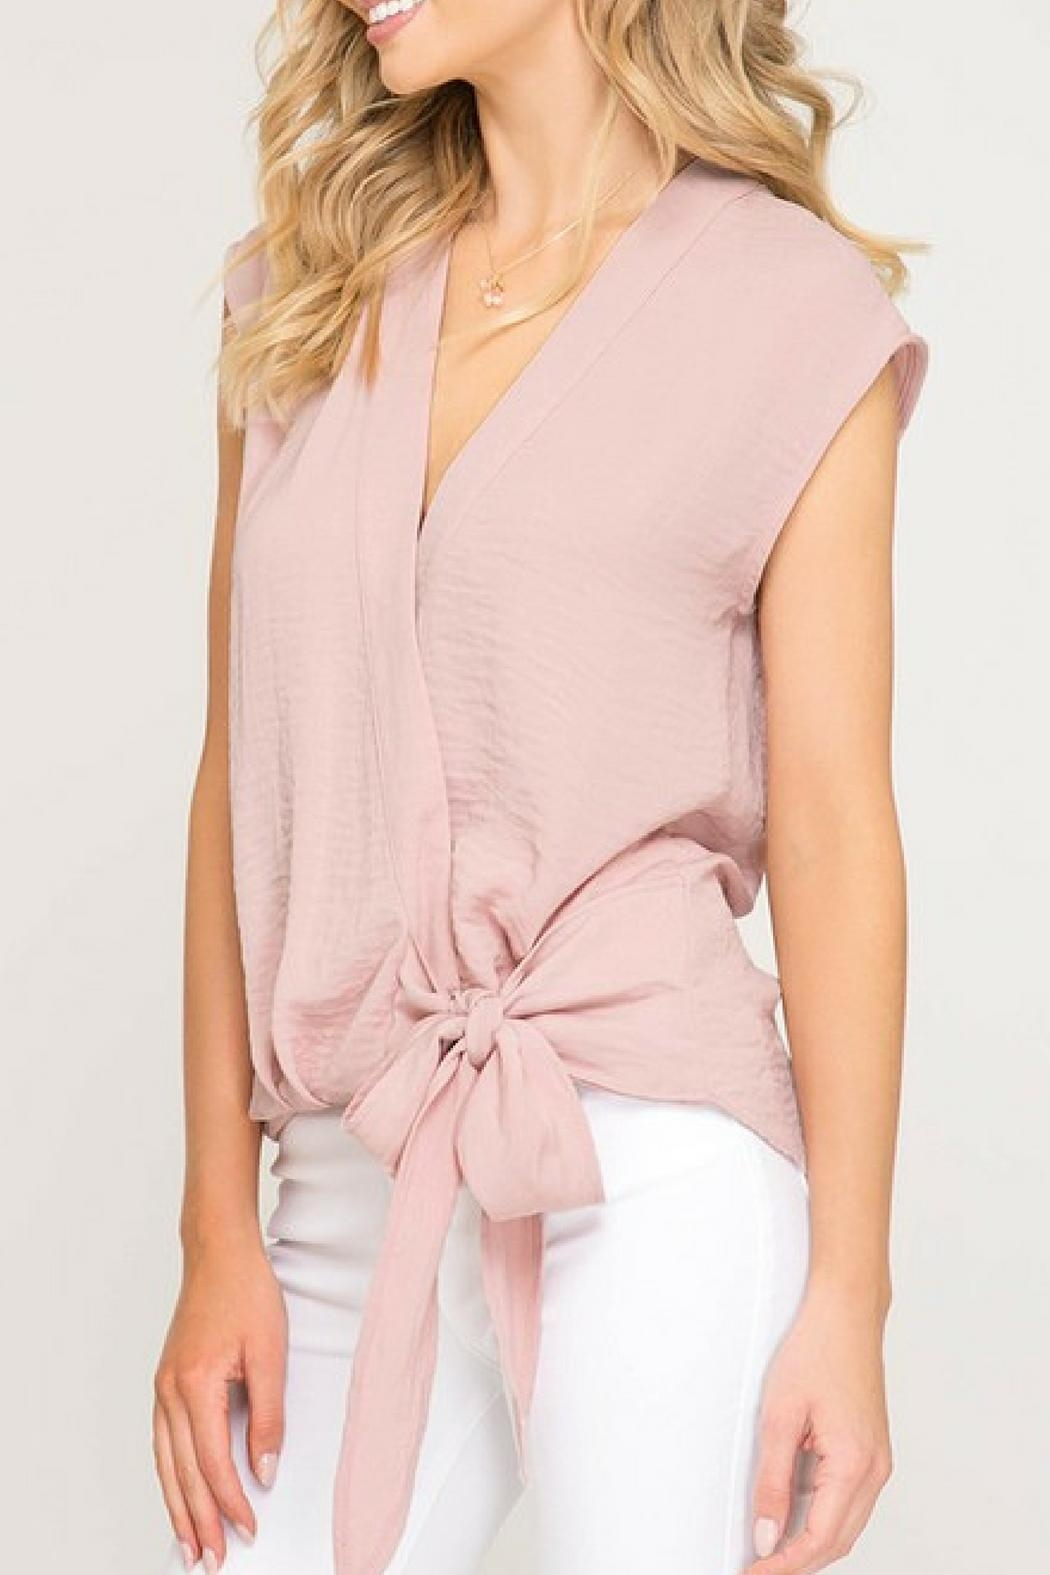 She + Sky Pink Bow Blouse - Front Full Image